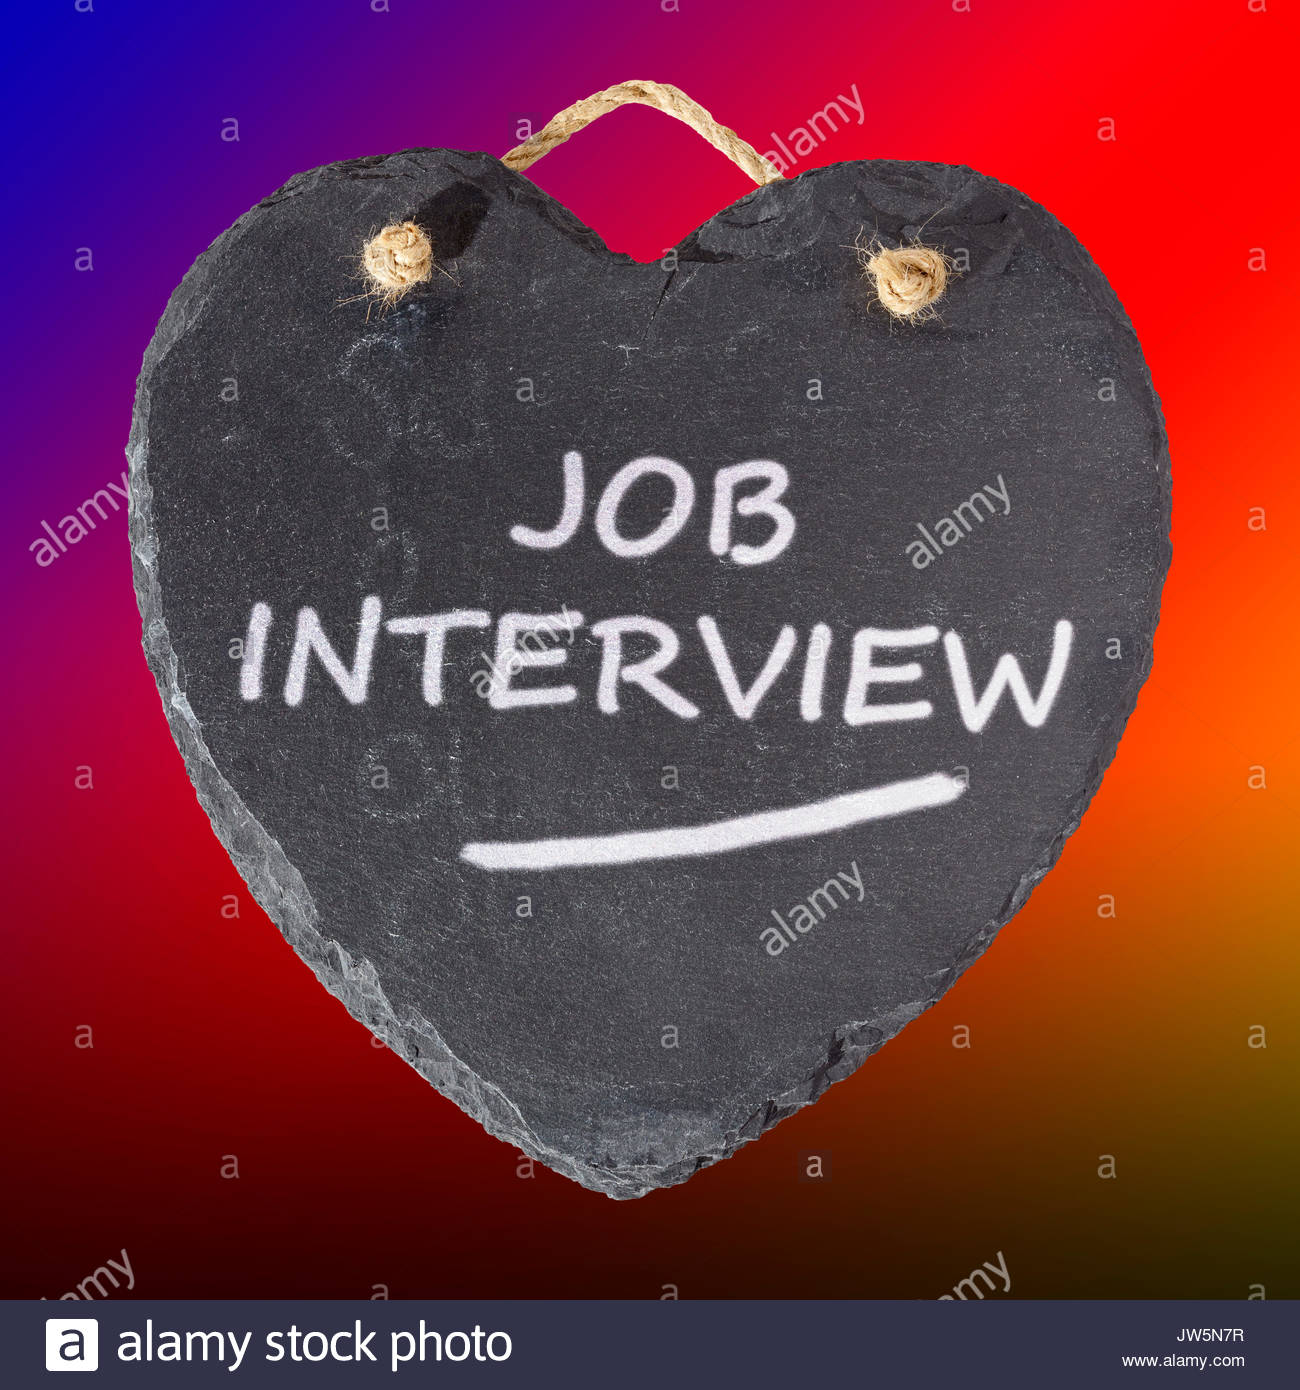 Job Interview written on a blackboard, Blandford, Dorset, England, UK - Stock Image